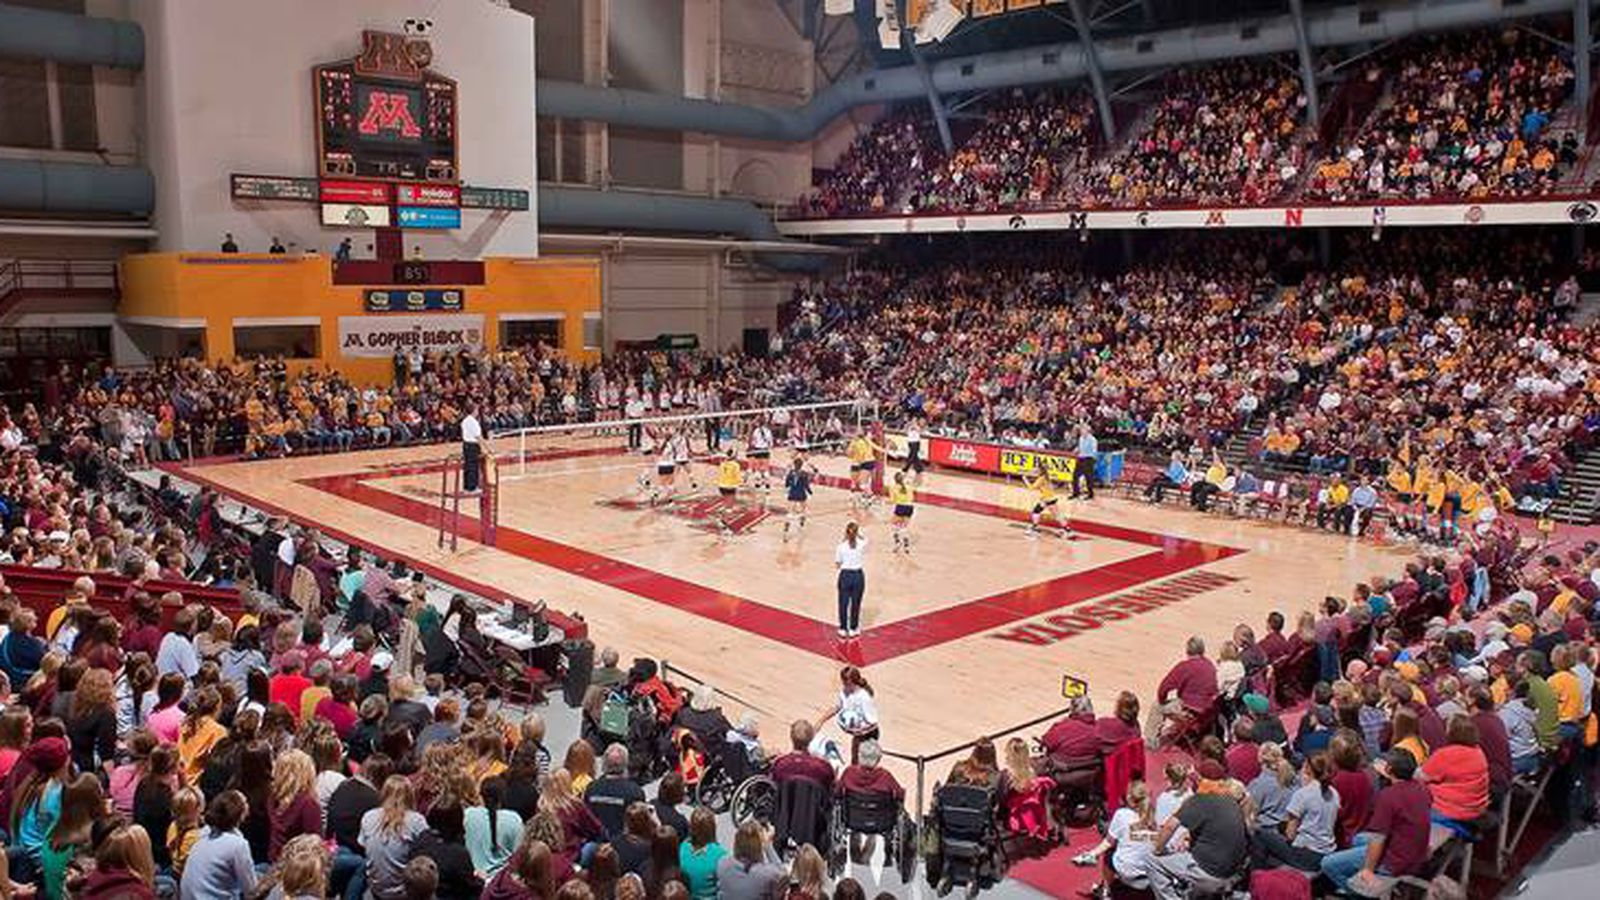 Minnesota Volleyball - The Nugz Remind You To Go Support The Gophers! - The Daily Gopher